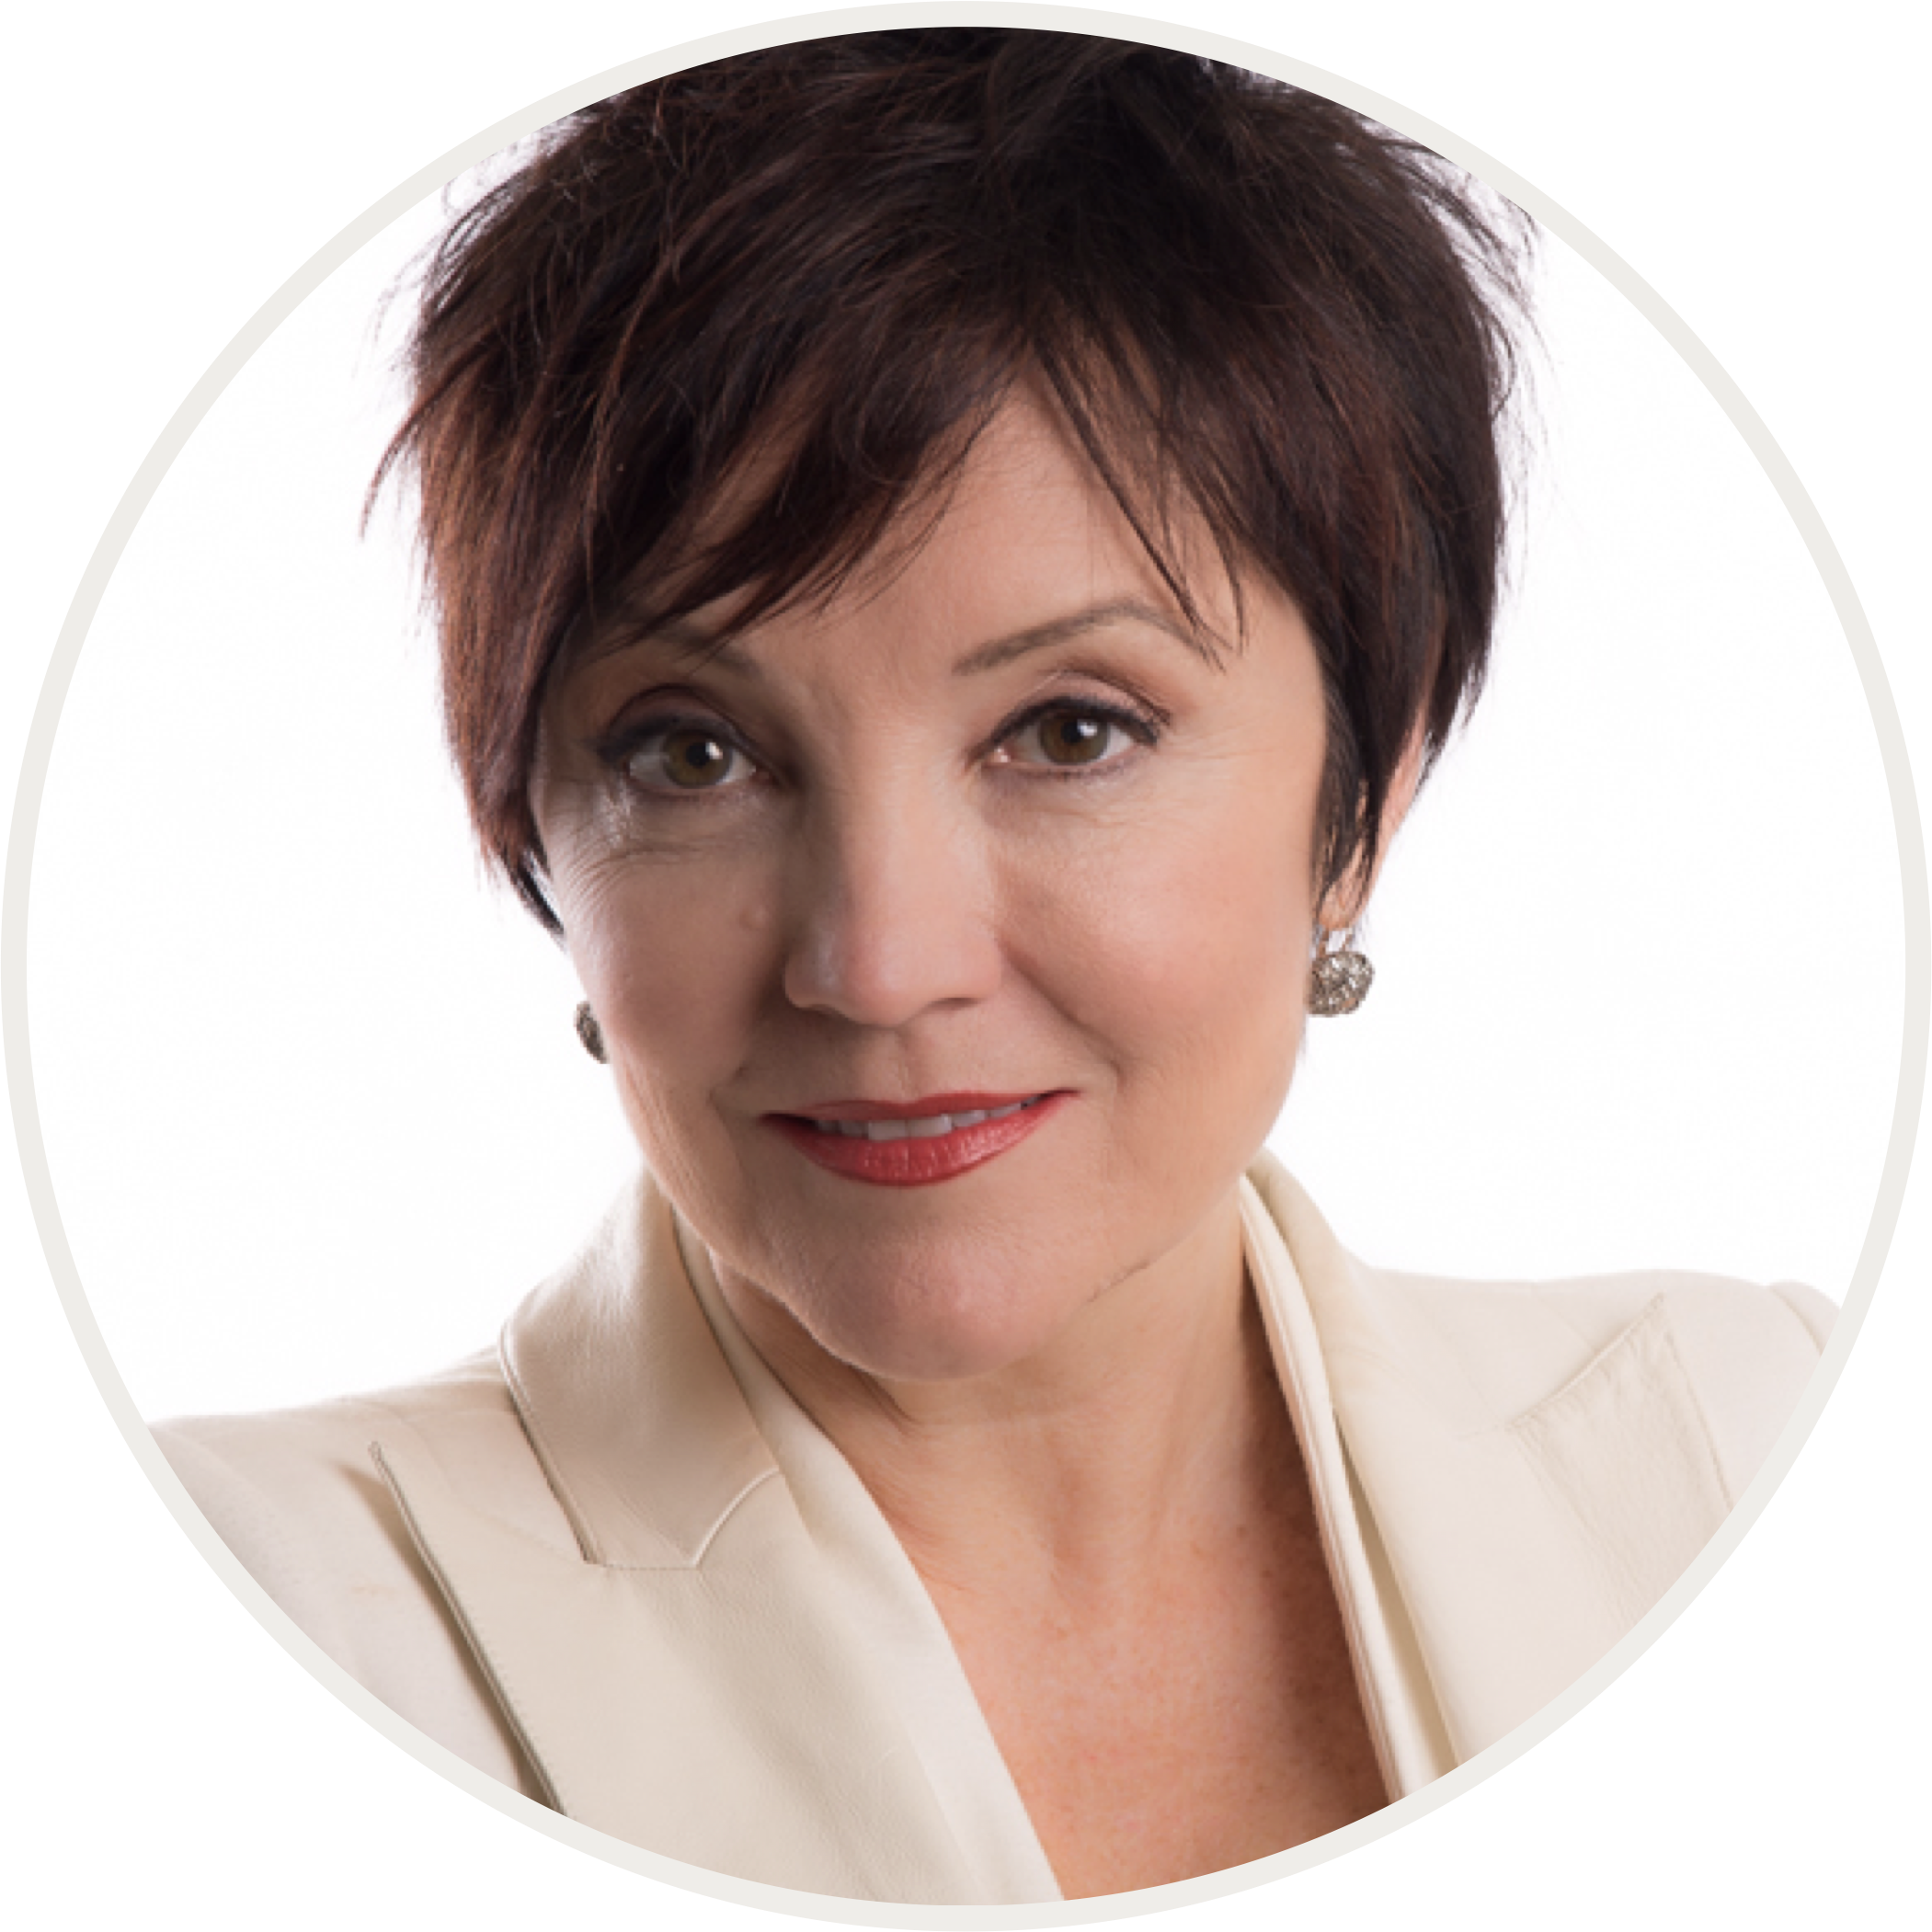 About Cassandra - Cassandra has over 32 years experience helping clients through relationship breakdowns. An Accredited Family Law Specialist and Australian leader in Mediation, Arbitration, Collaborative Practice & Parenting Coordination, Cassandra has the expertise and experience to help you, no-matter the situation.